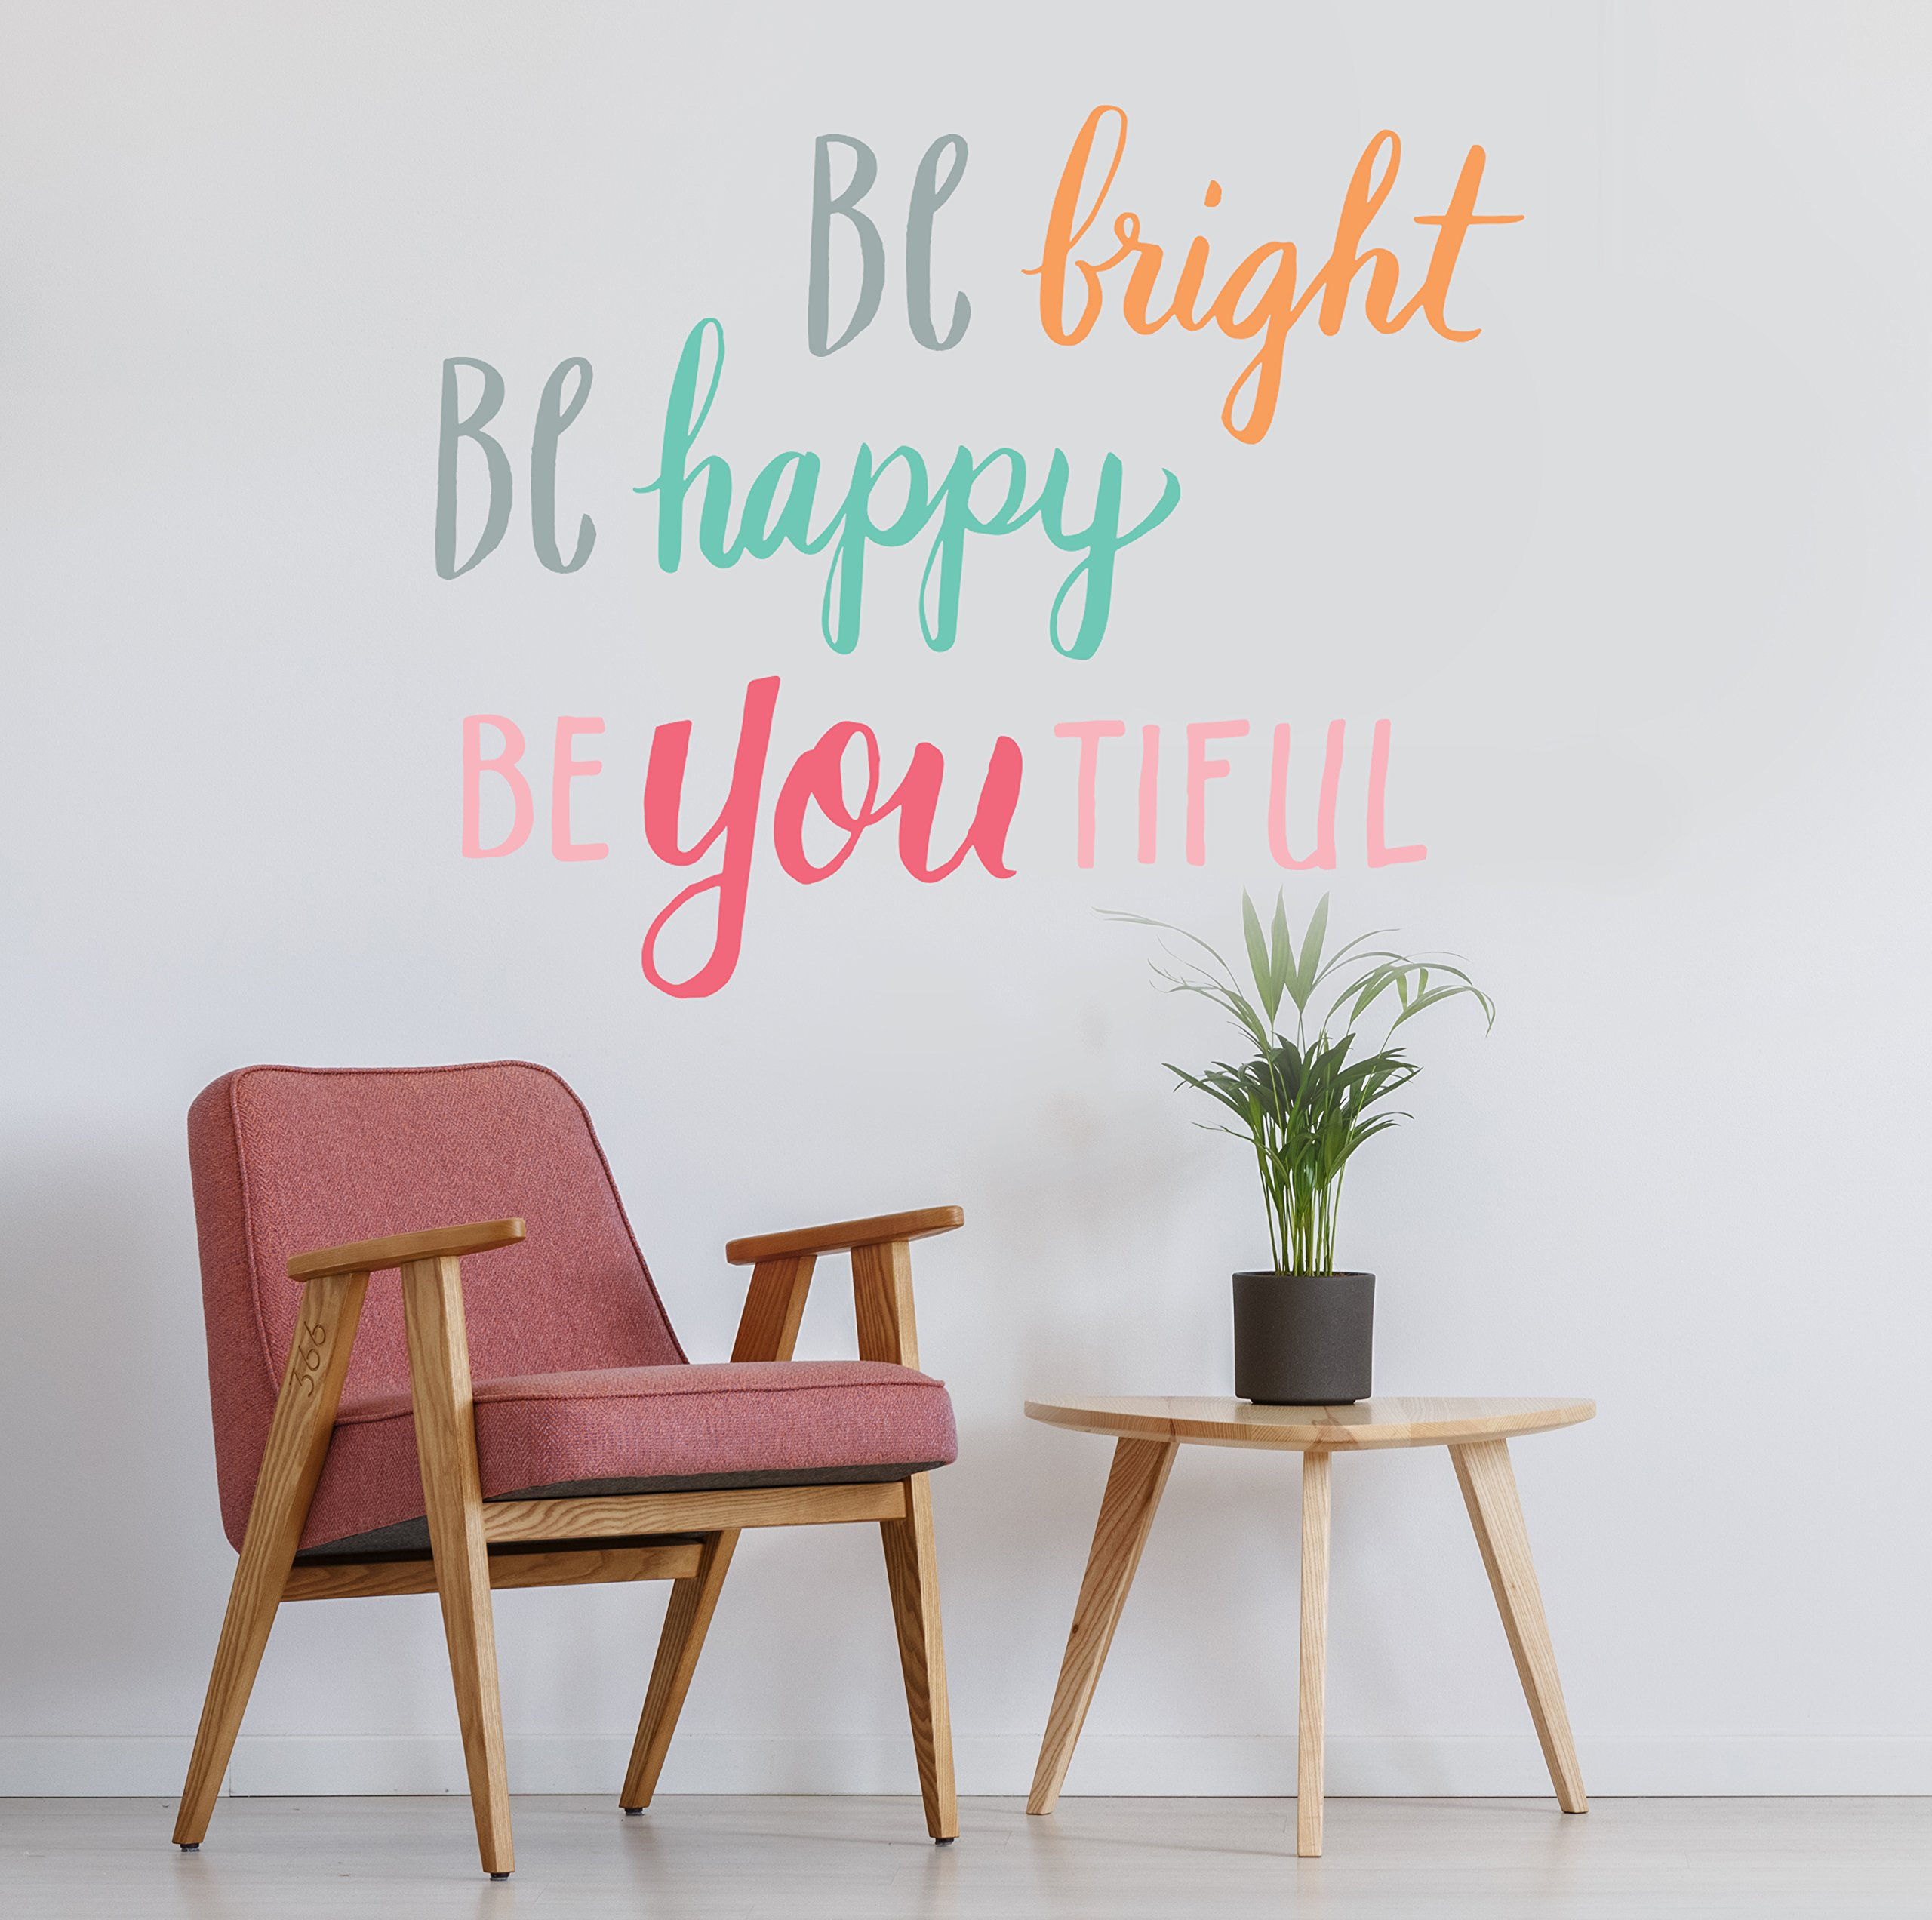 Wall Decals Colorful Quote Stickers for Room Decor | Easy to Peel and Stick + Safe on Painted Walls - Playbook of 10 Vinyl Sheets - Be Bright, Be Happy, Be You. DIY Decoration | By Paper Riot Co.